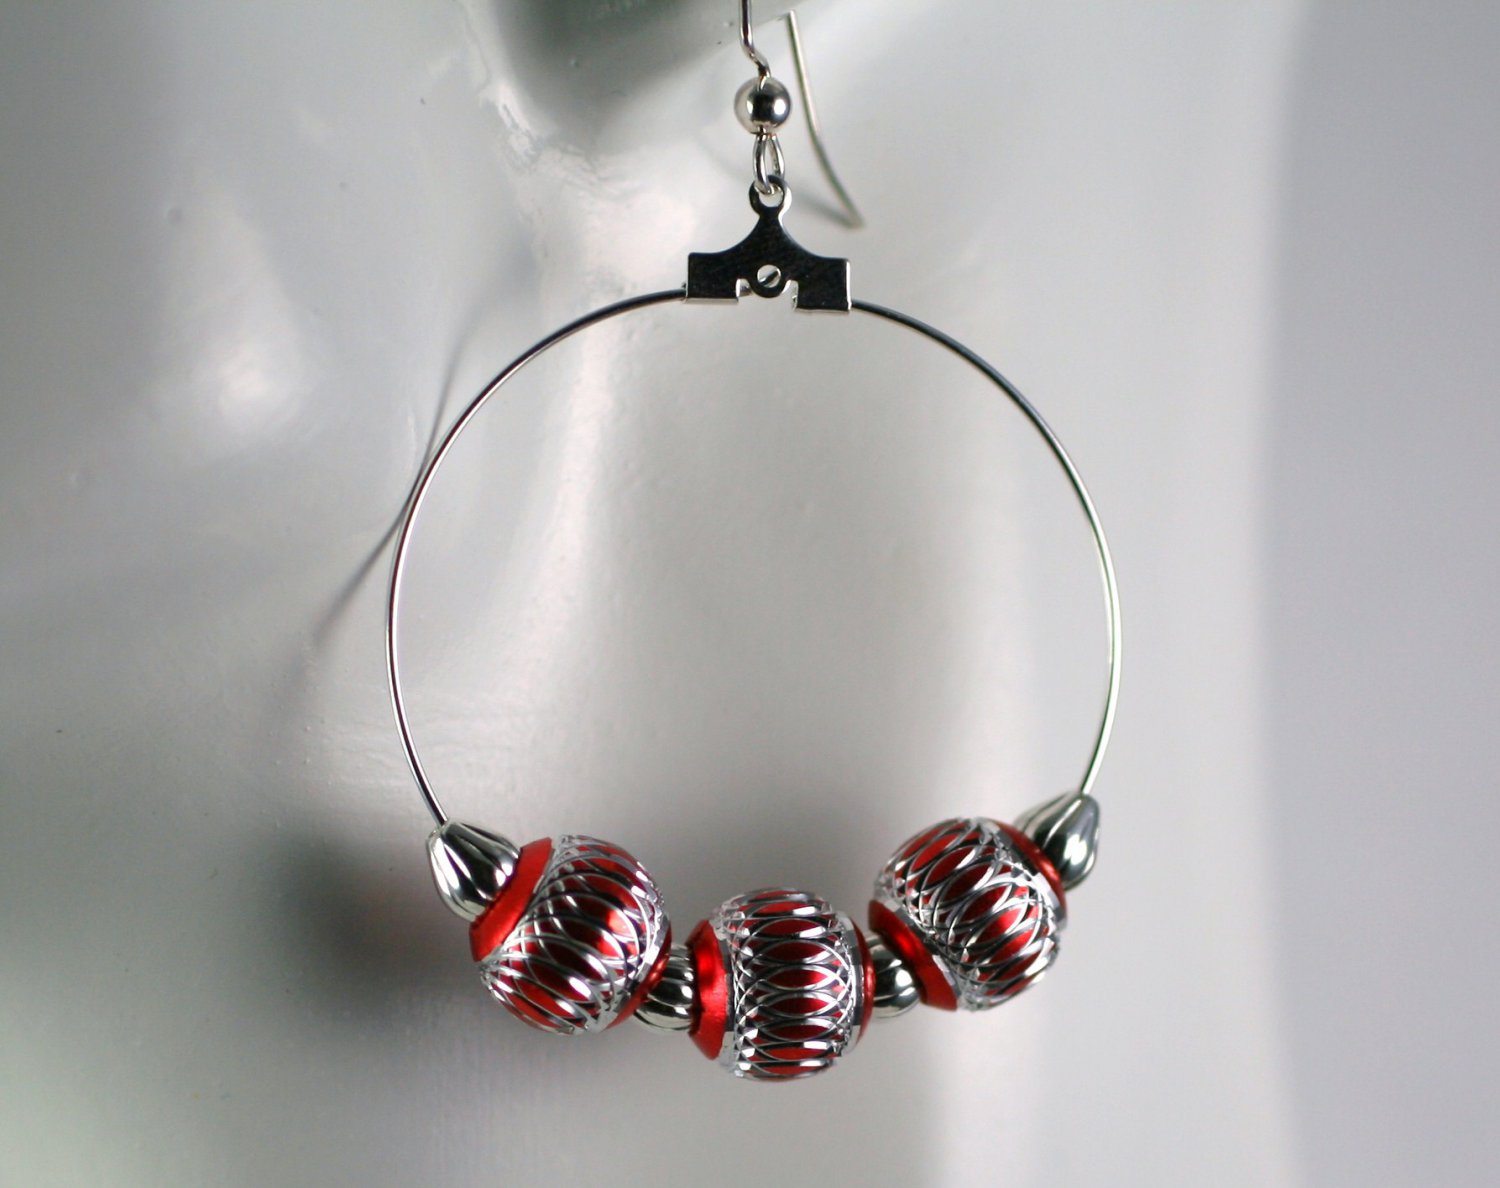 Silver Hoop Earrings with Silver and Red Beads 1.5 in. Diameter  Handcrafted Jewelry